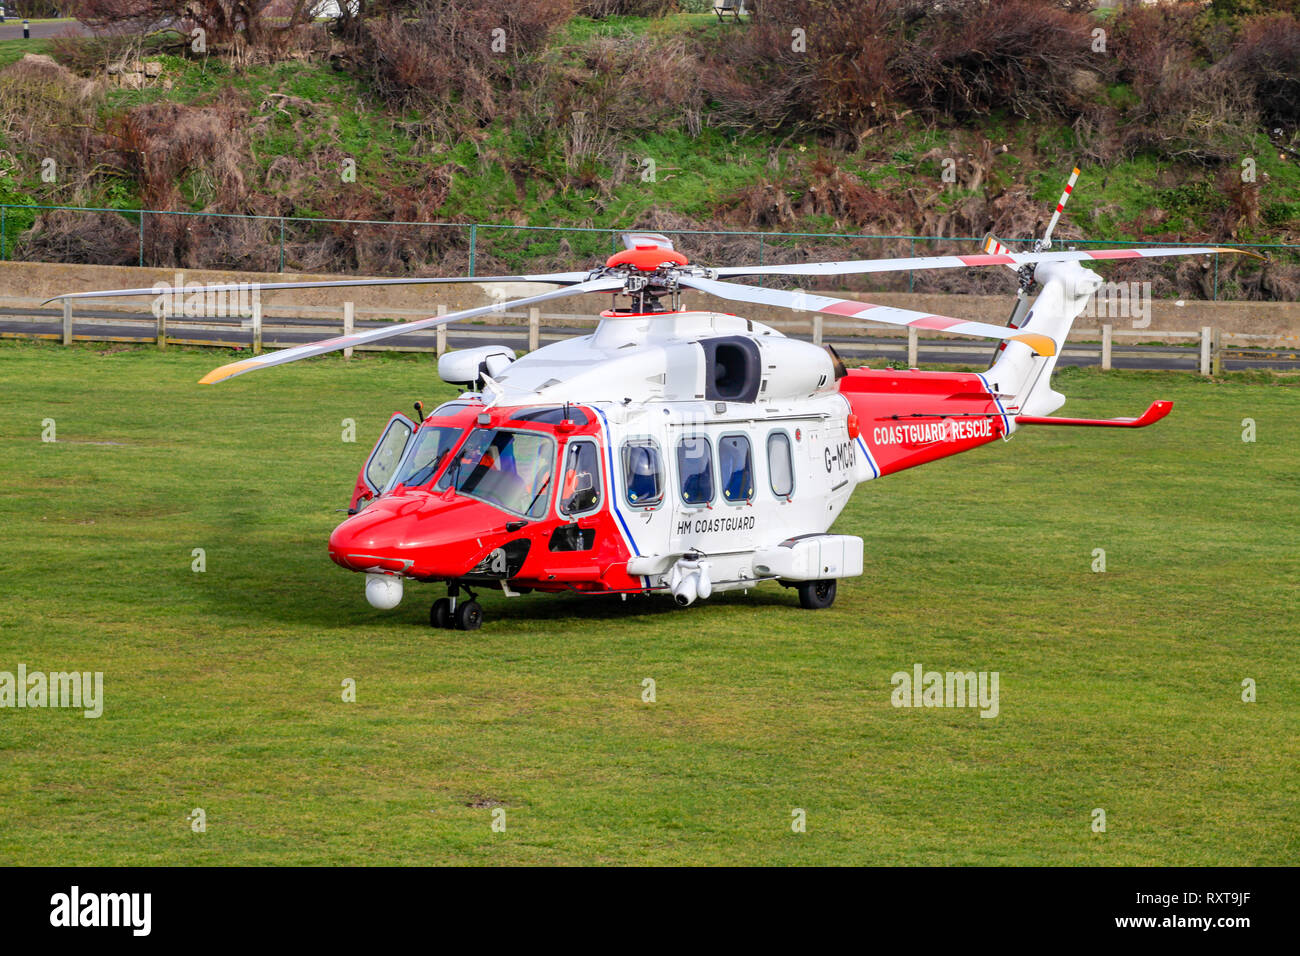 Seaford Sussex UK: 13th Feb 2019: HM Coastguard helicopter was